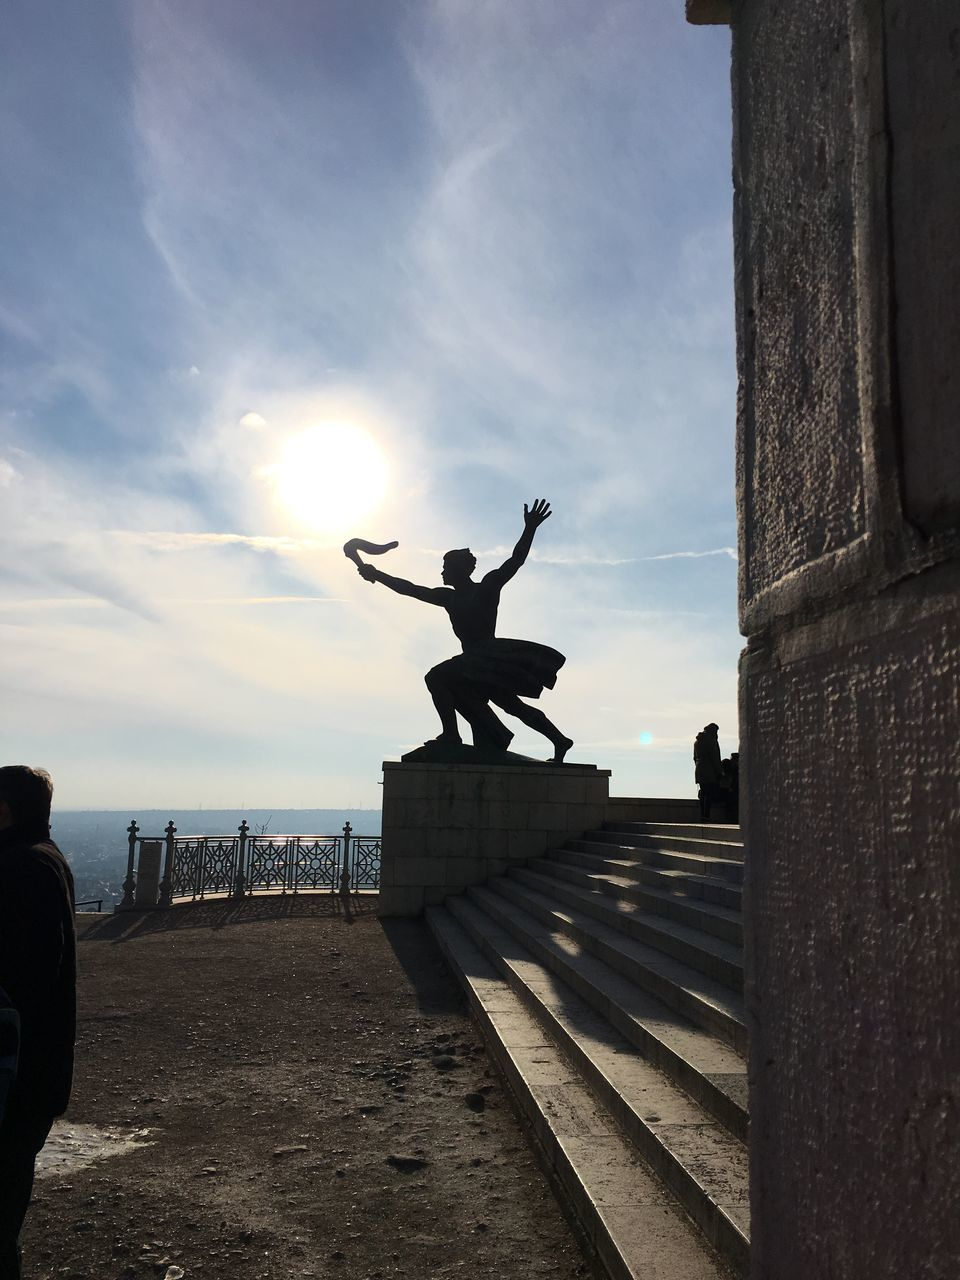 sky, silhouette, full length, men, real people, sunset, statue, lifestyles, skill, cloud - sky, sculpture, built structure, day, jumping, energetic, outdoors, architecture, handstand, water, stunt, nature, one person, people